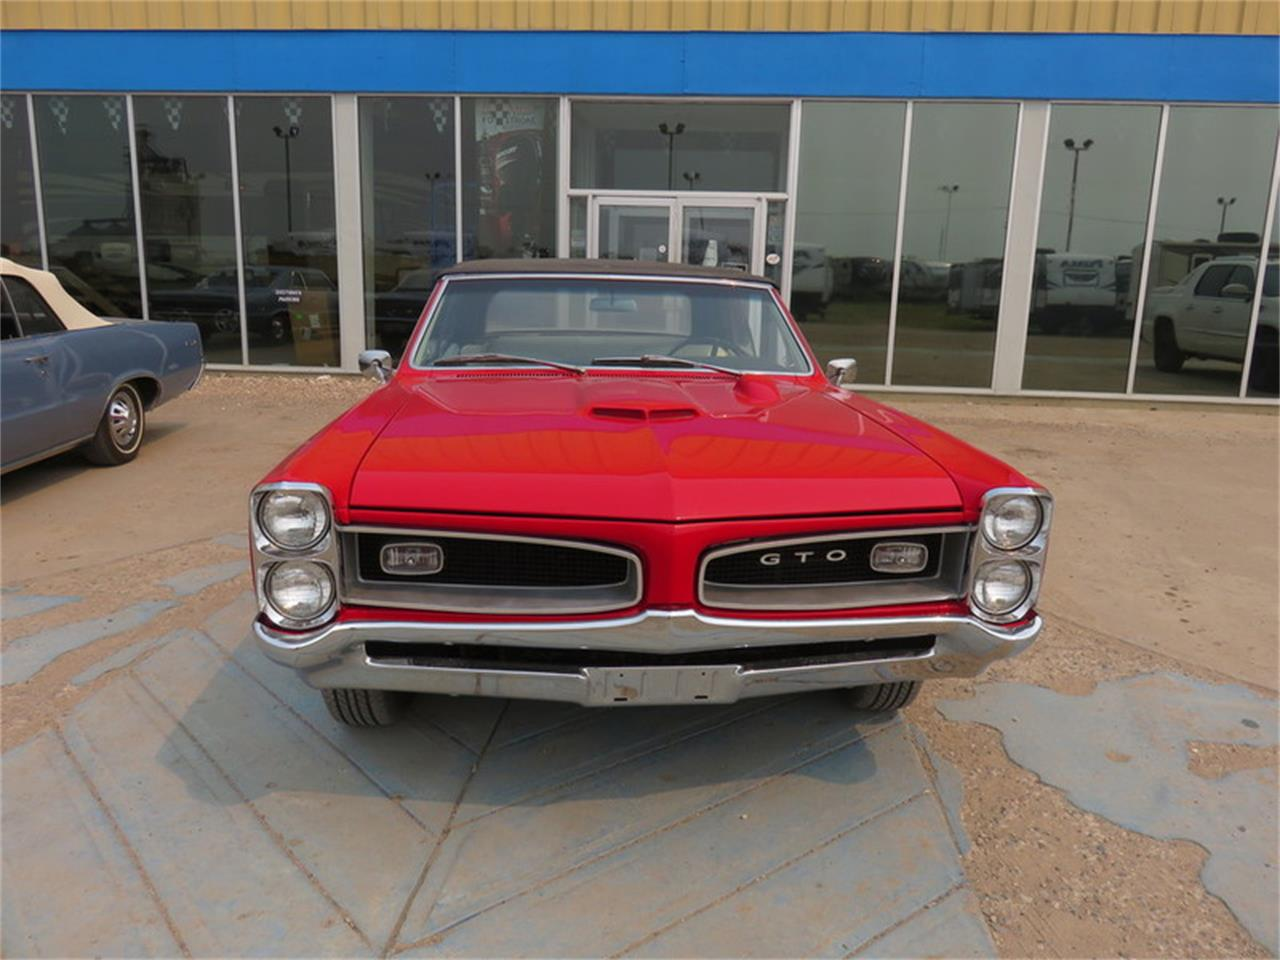 Large Picture of '66 Tempest located in DAVIDSON Saskatchewan Auction Vehicle - H6CW